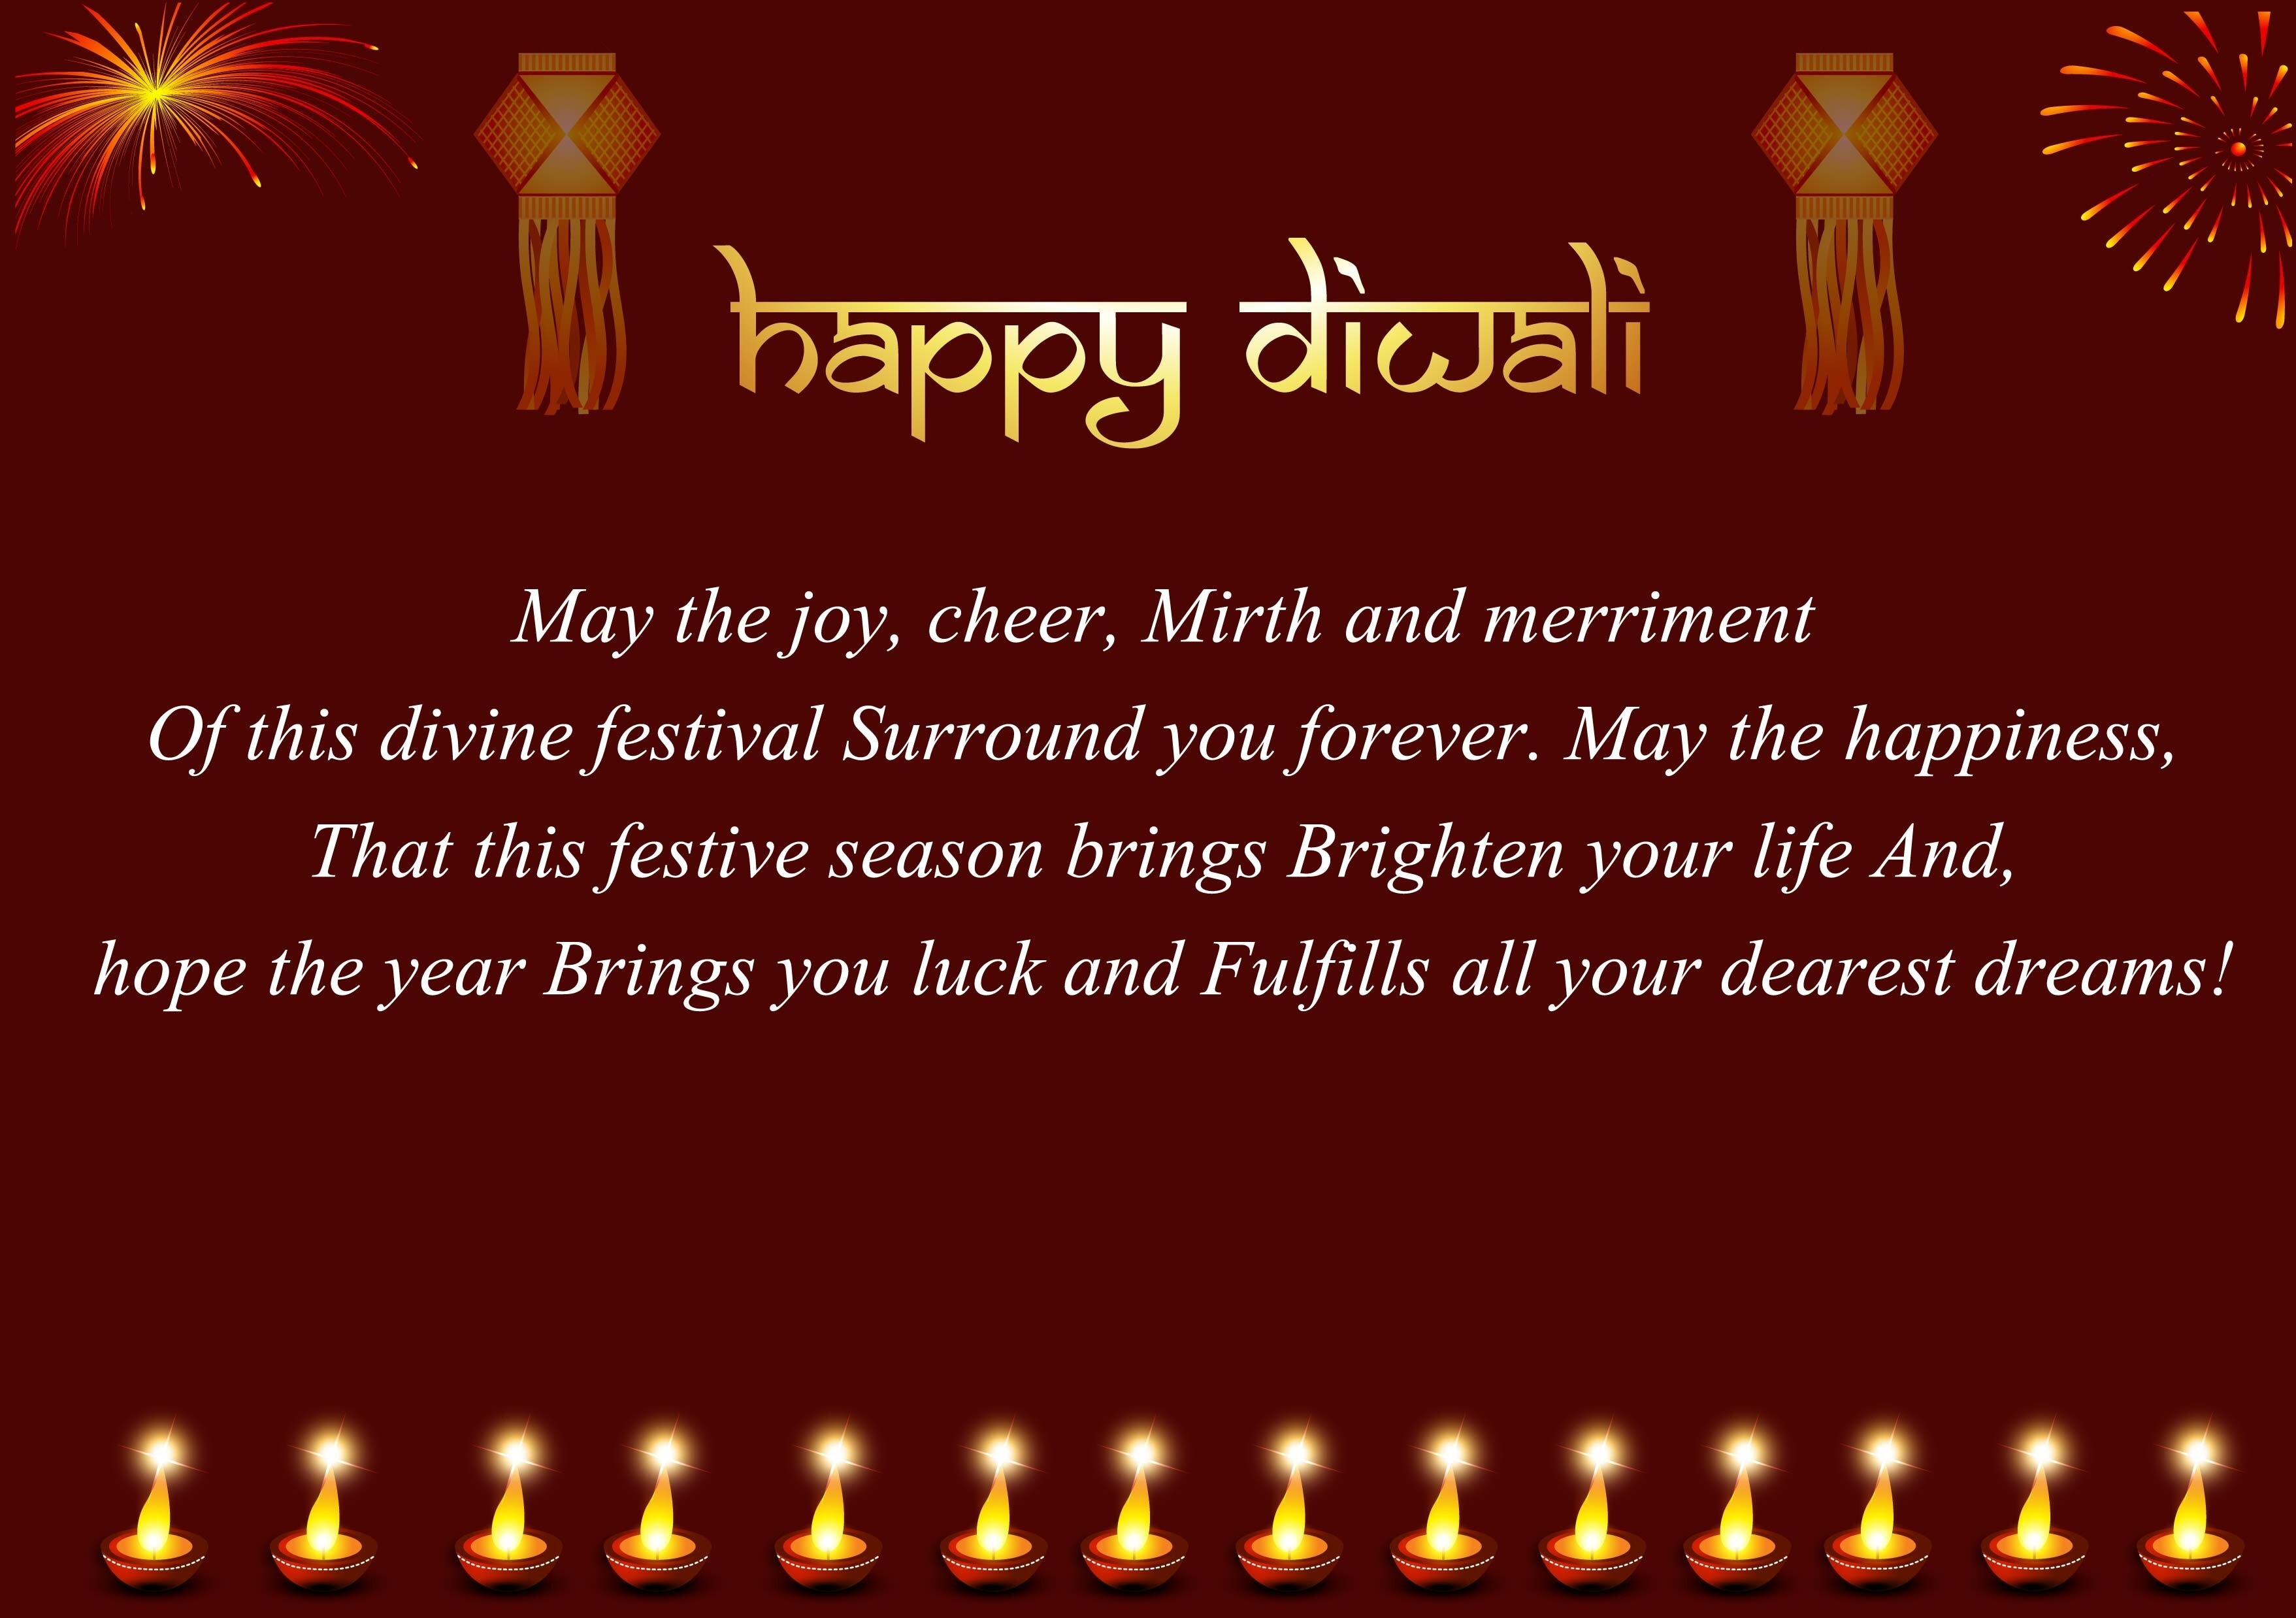 Happy Diwali Greeting Cards Images Hd Wallpapers